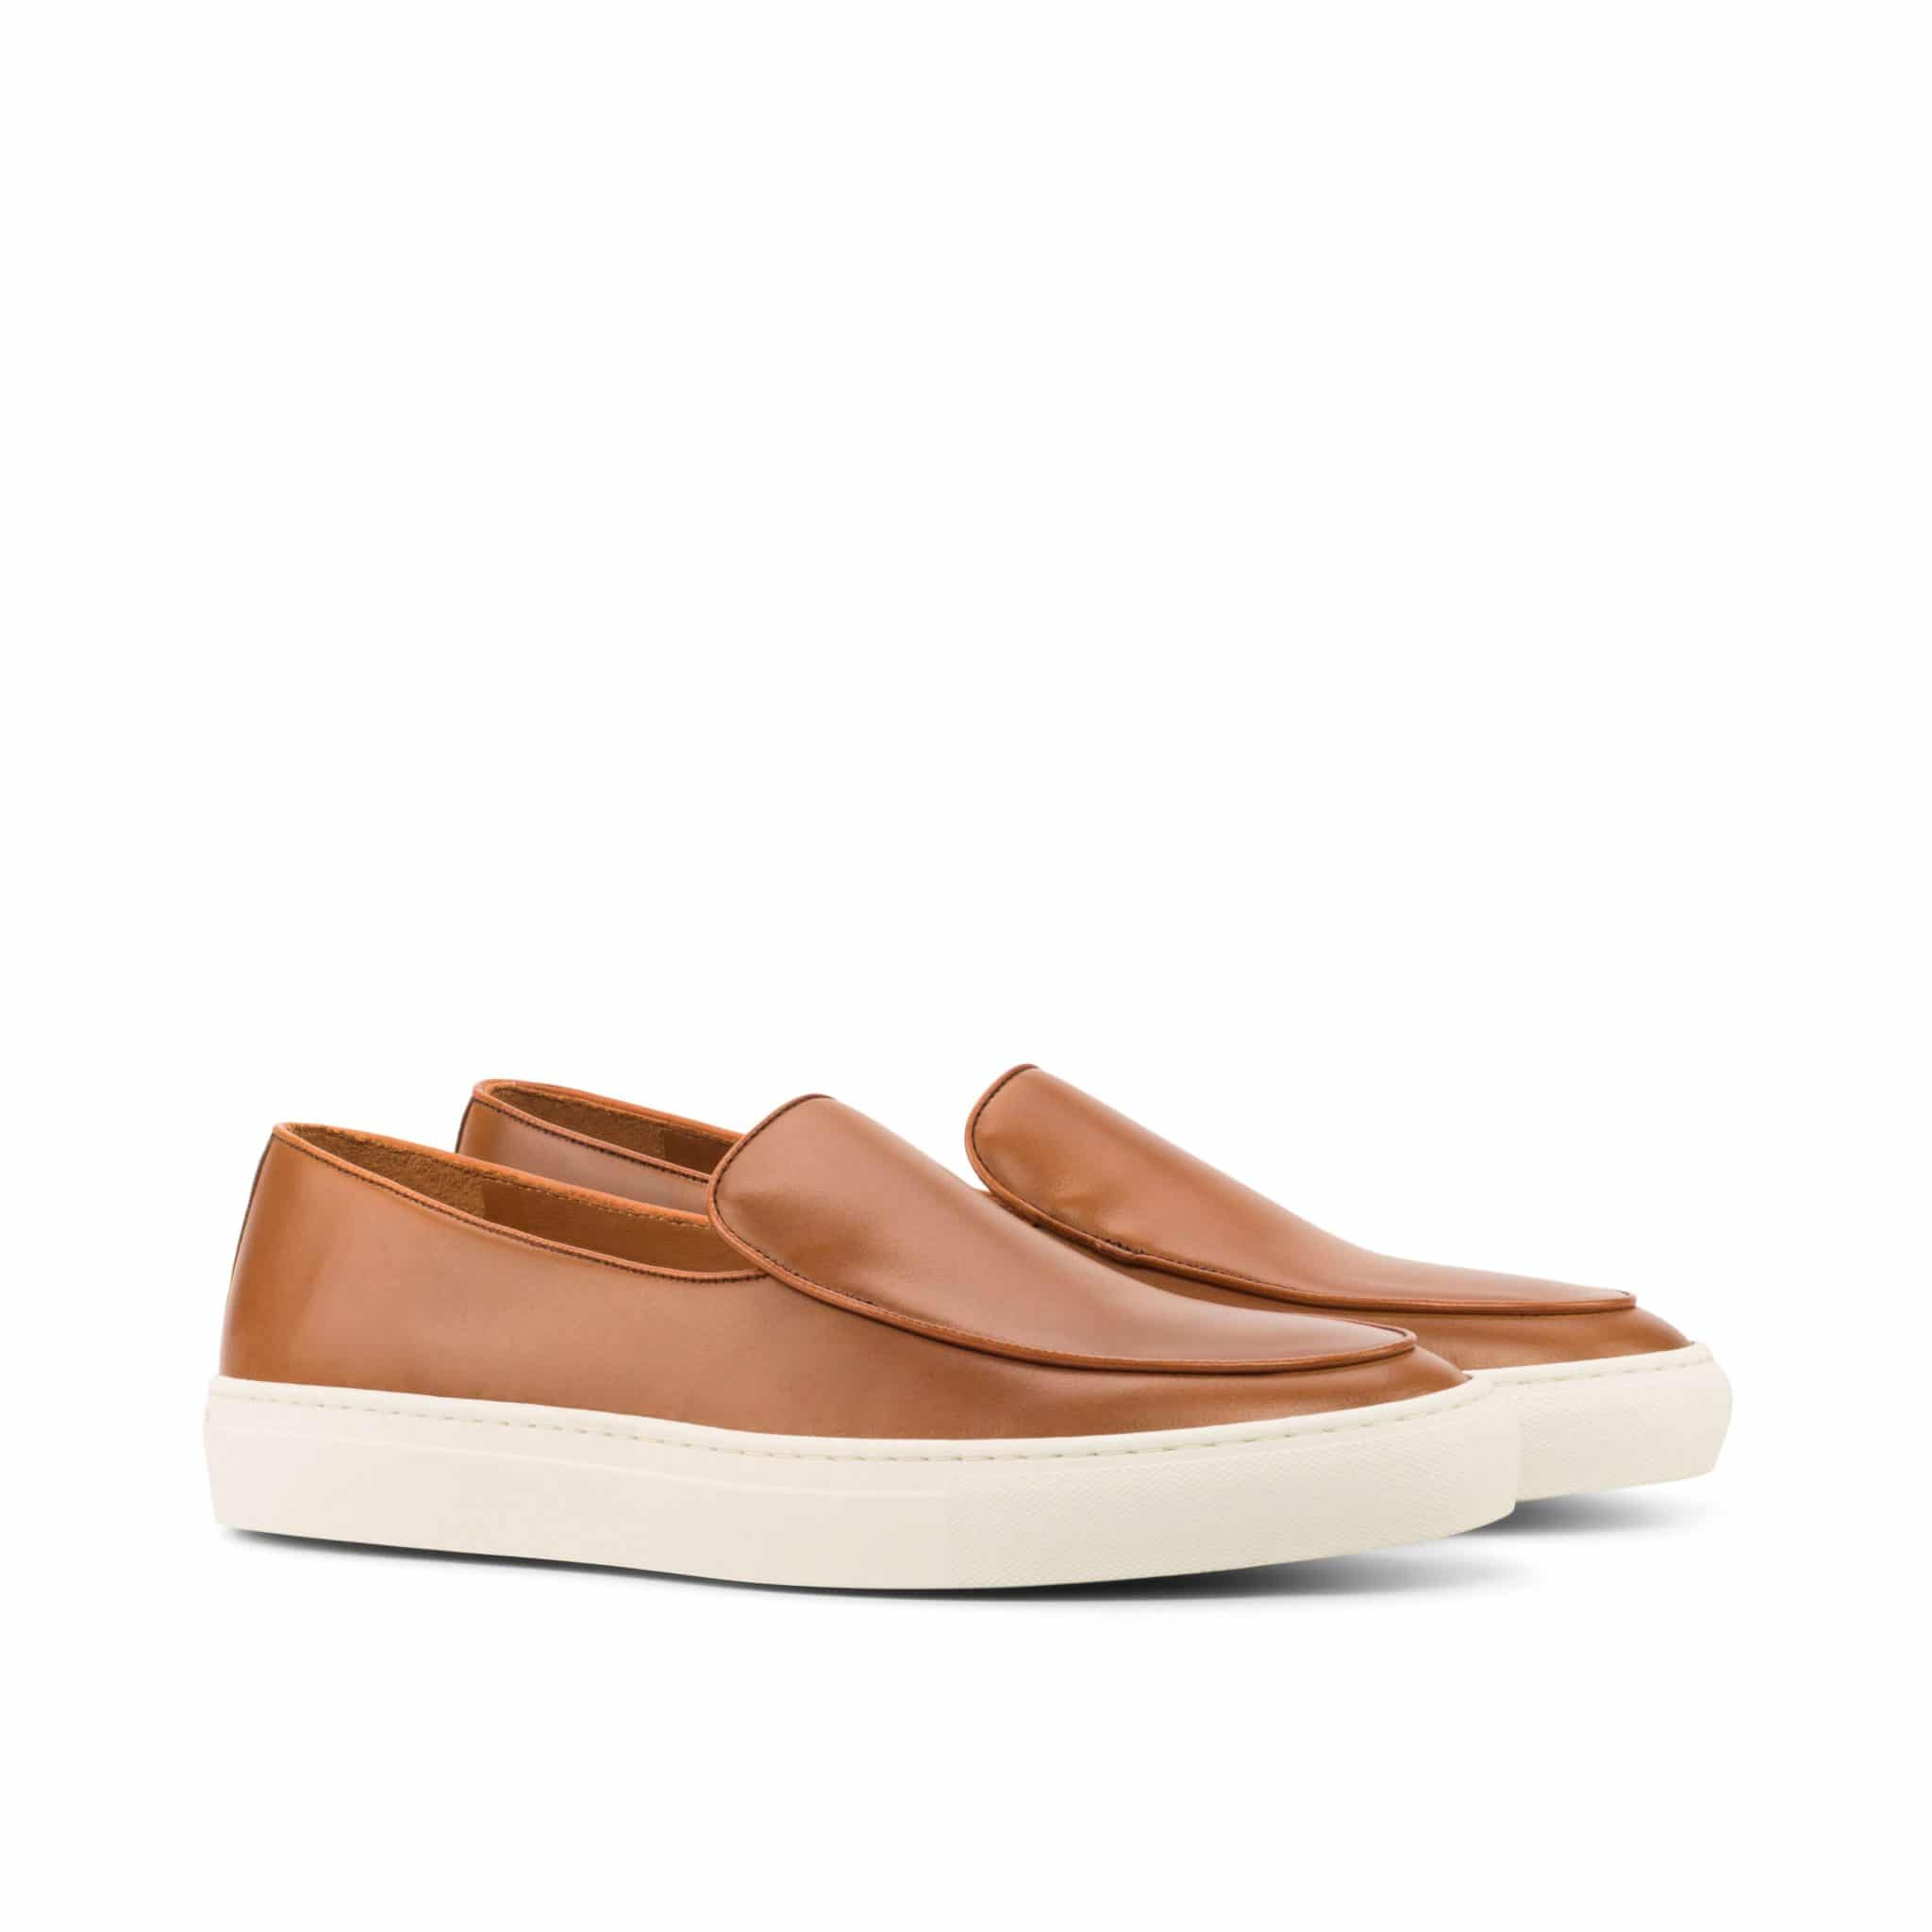 Tan Leather Slip On Loafer Sneaker for Men. White Comfortable Cup Sole.